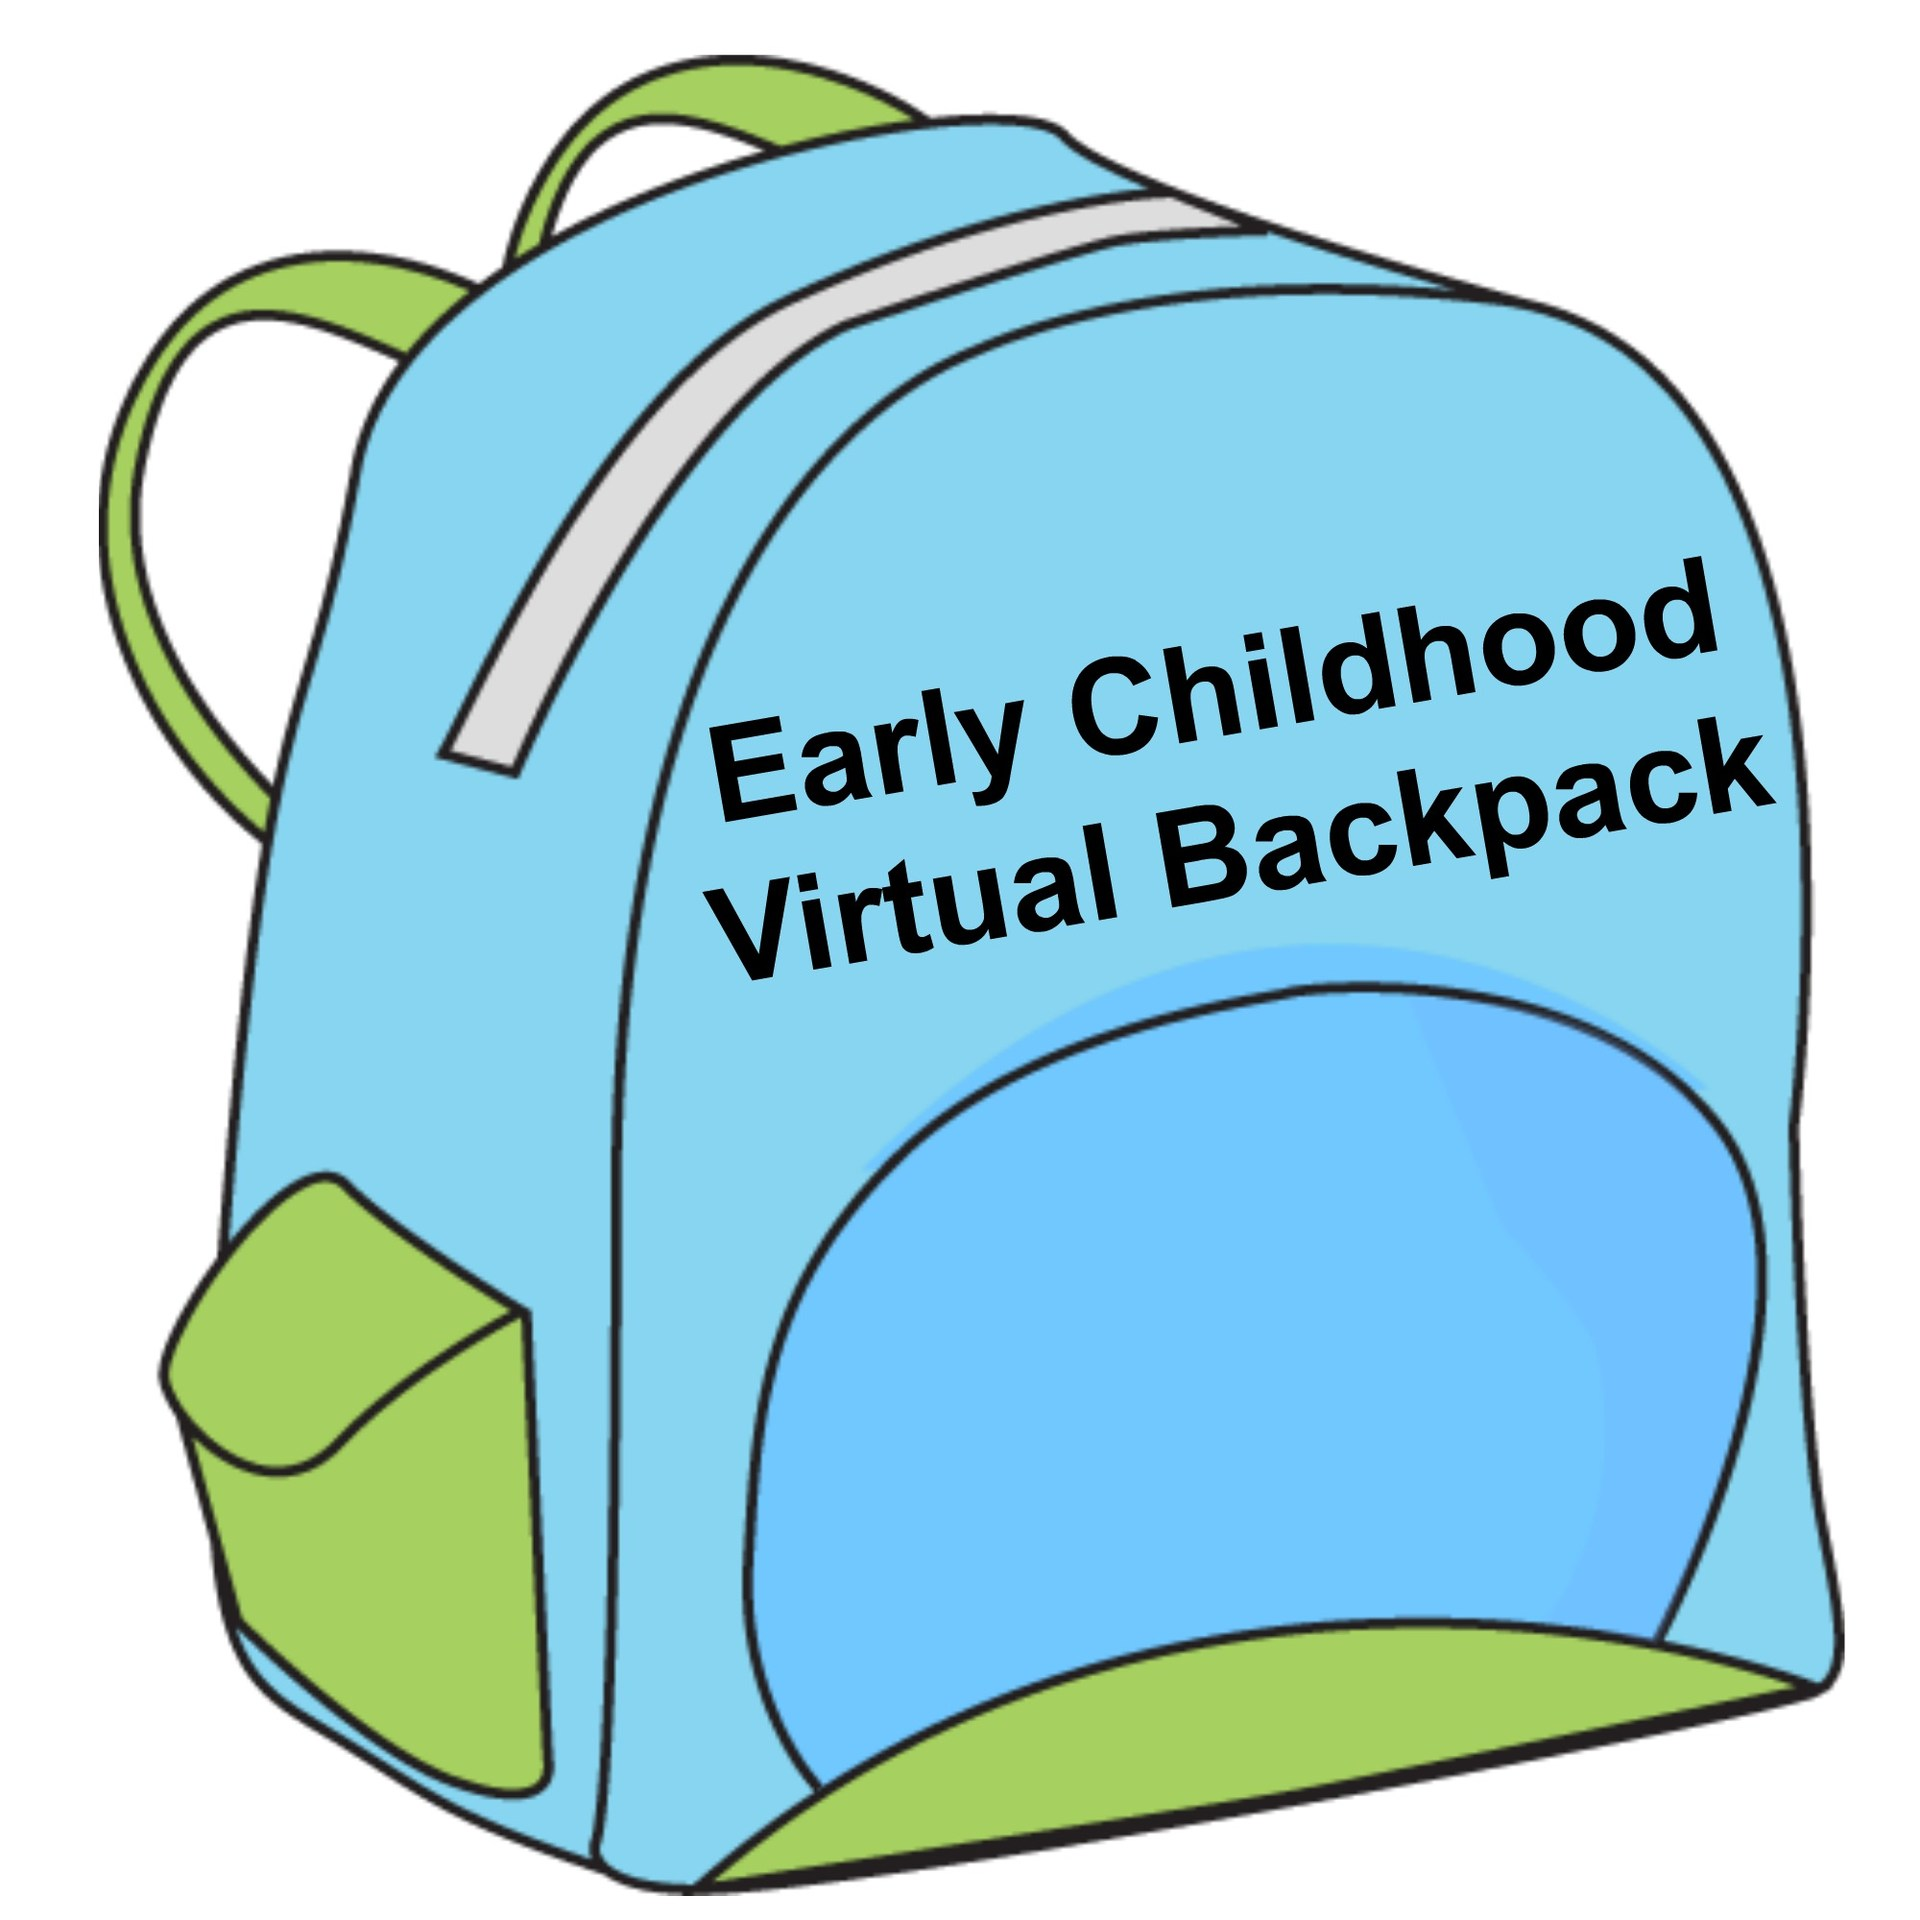 Early Childhood Virtual Backpack